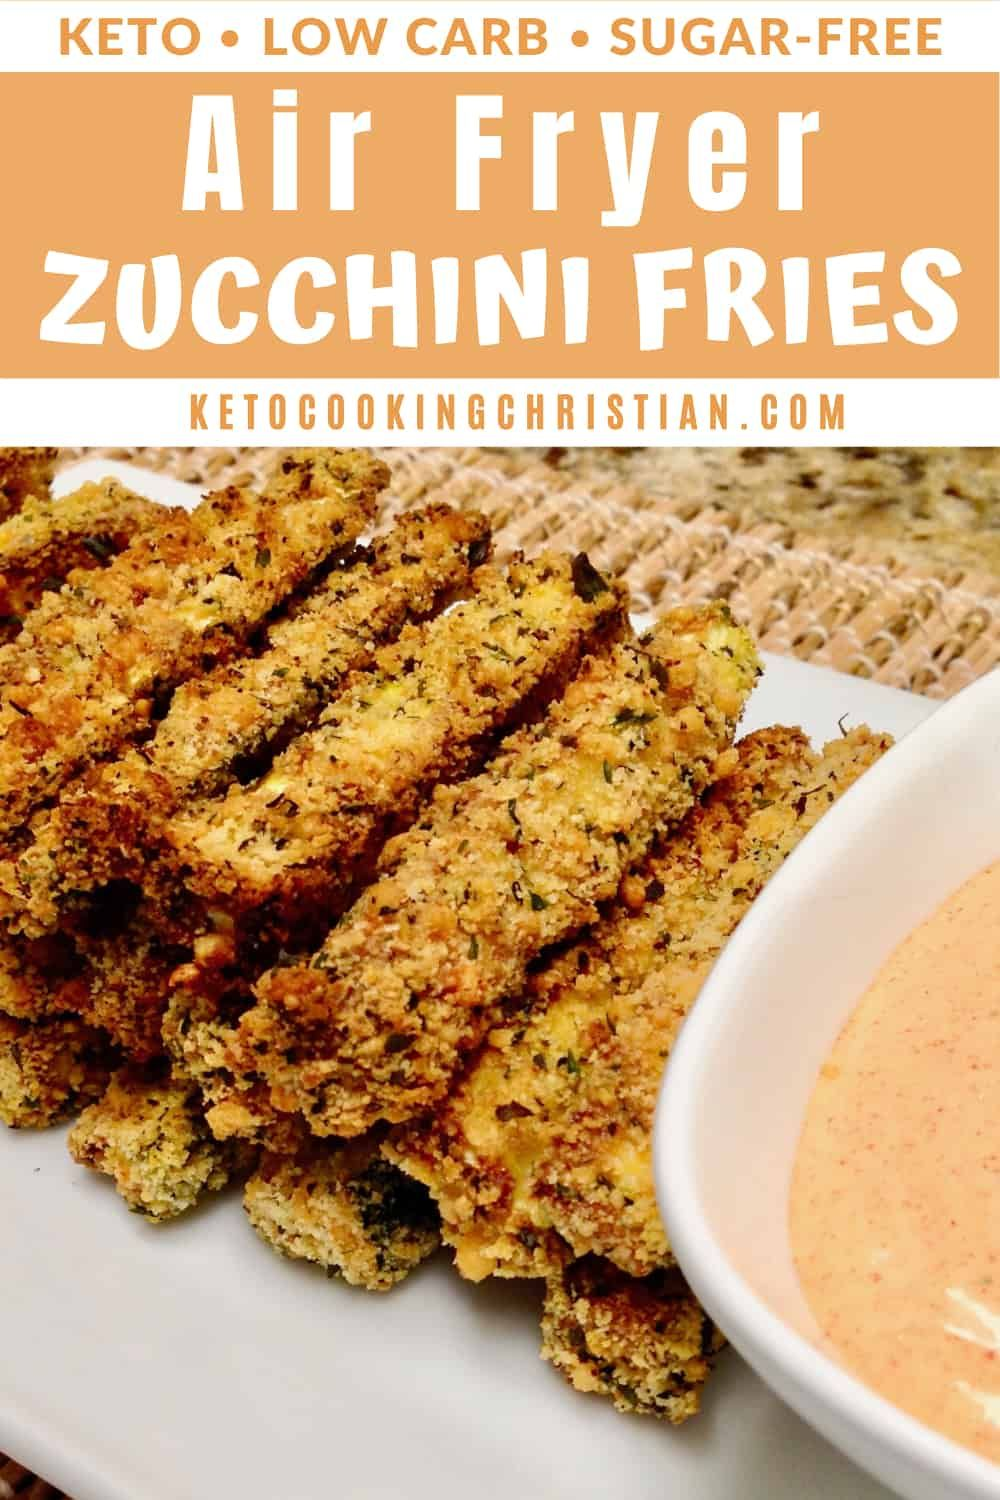 Keto Air Fryer Zucchini Fries Looking for a healthy